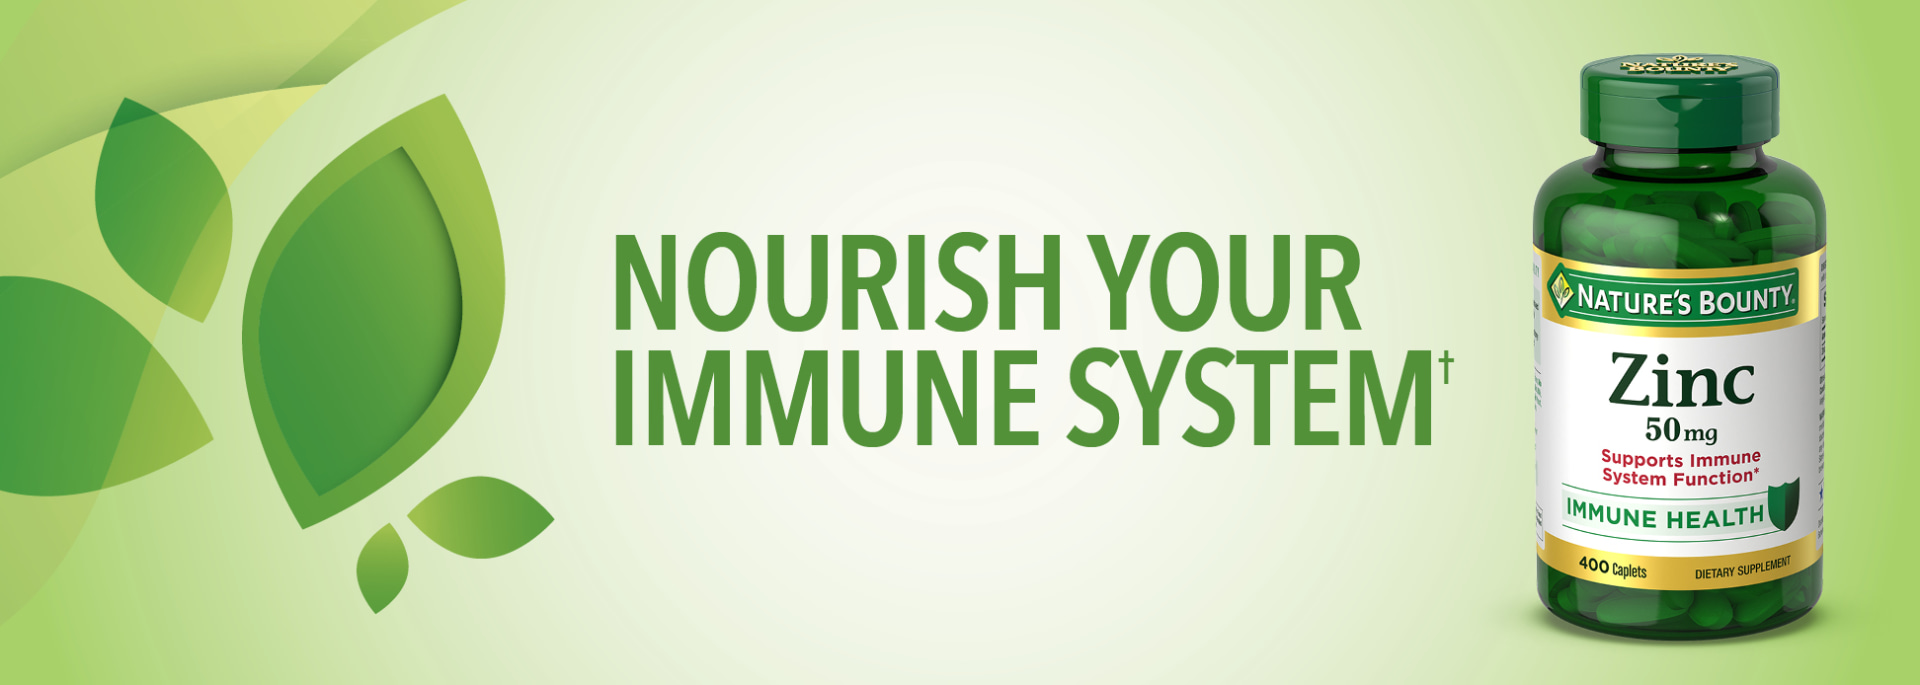 Nourish Your Immune Systemꝉ